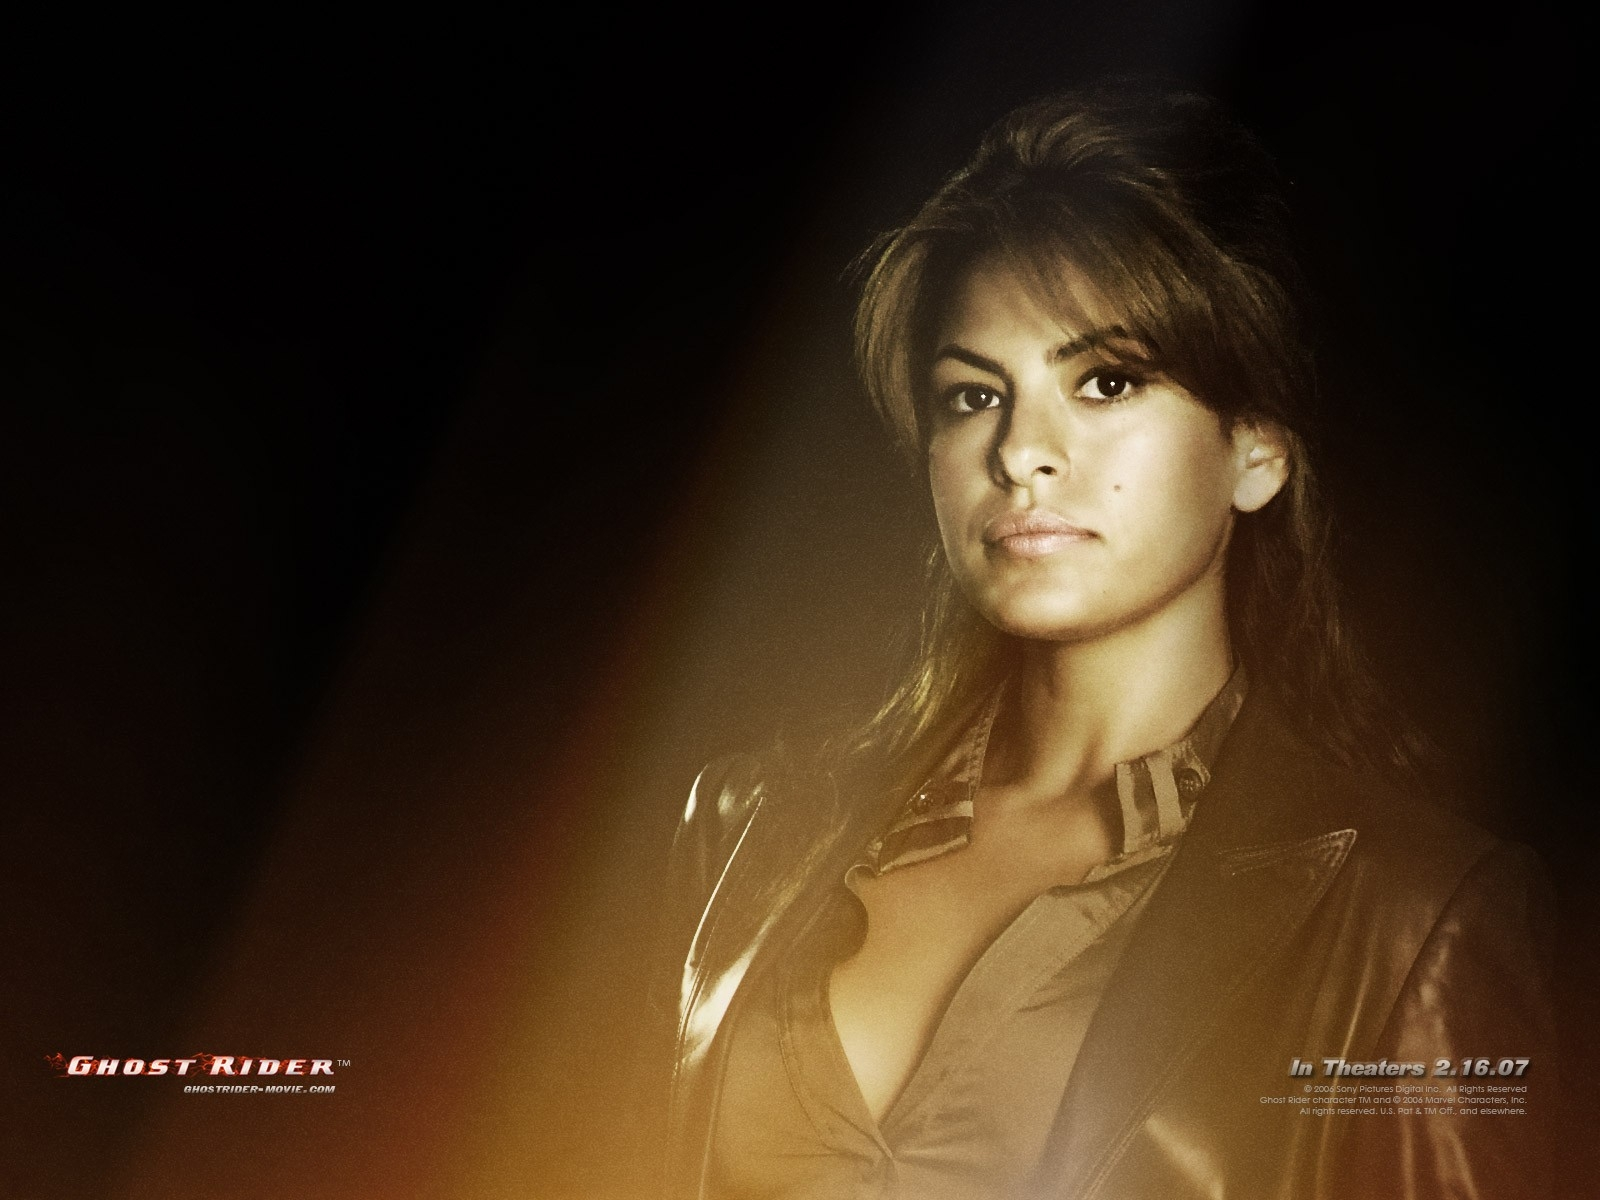 Wallpaper del film Ghost Rider con Eva Mendes